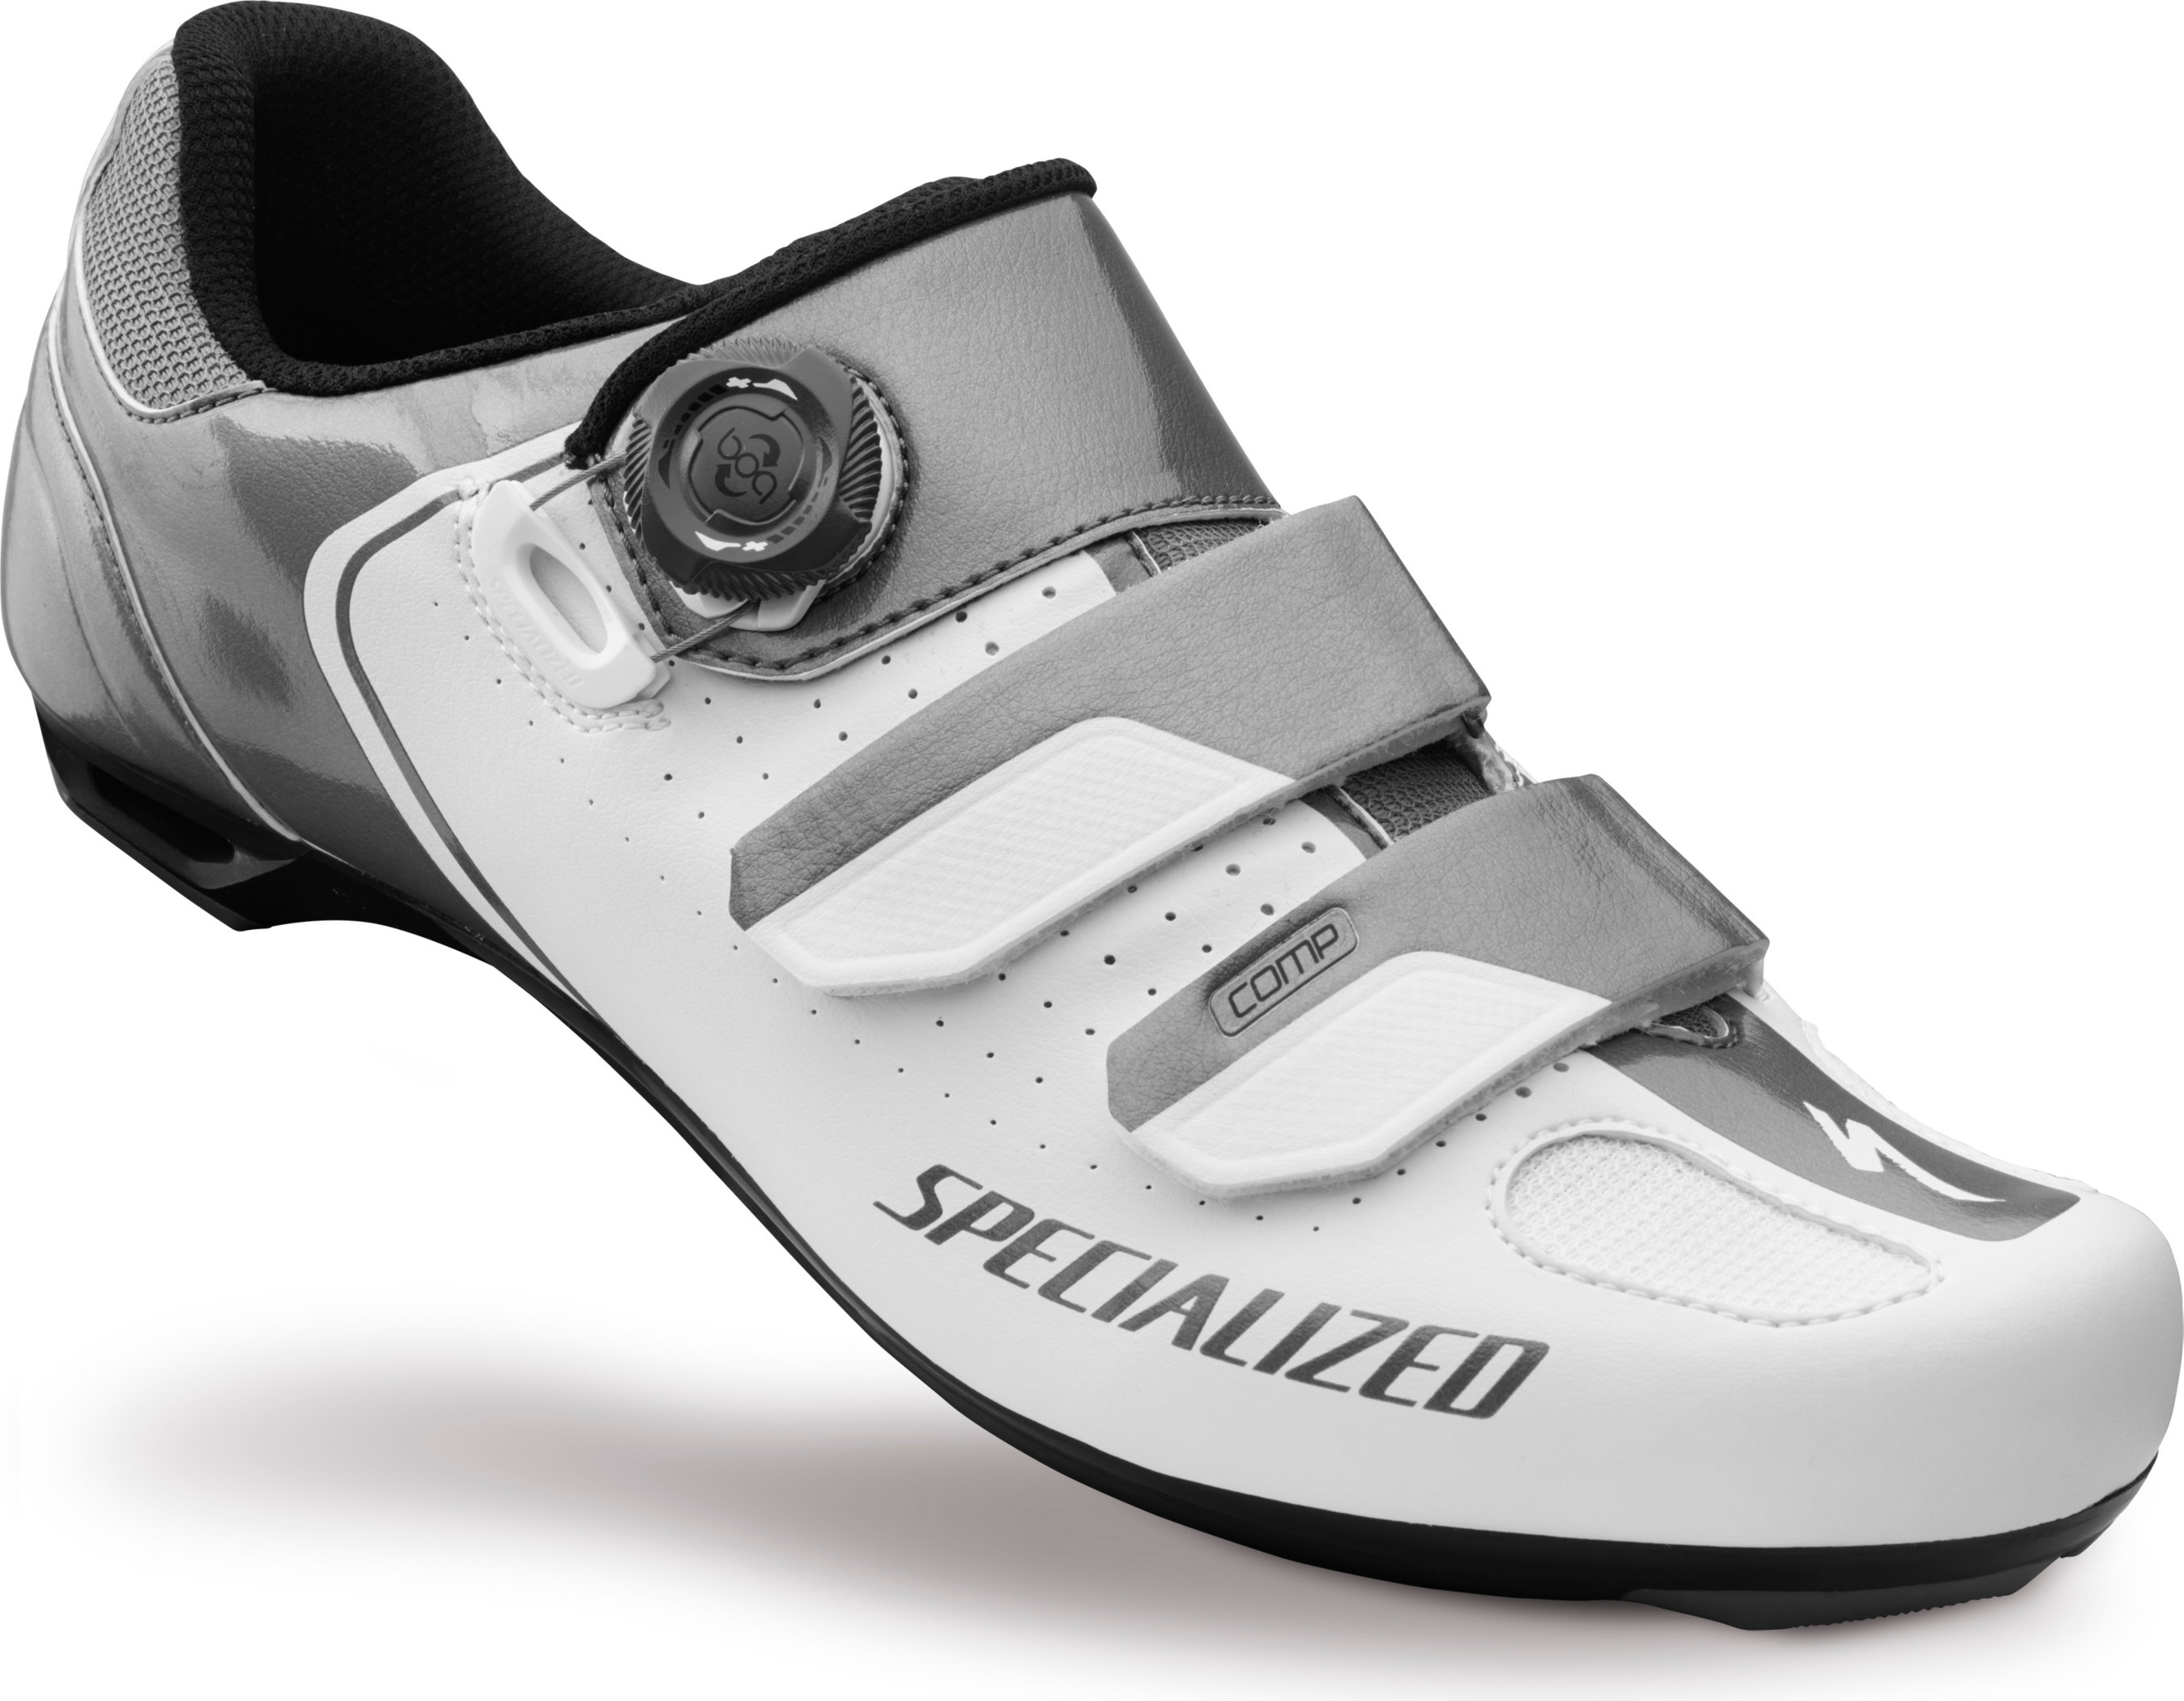 SPECIALIZED COMP RD SHOE WHT/TI 50/15.5 - Bikedreams & Dustbikes